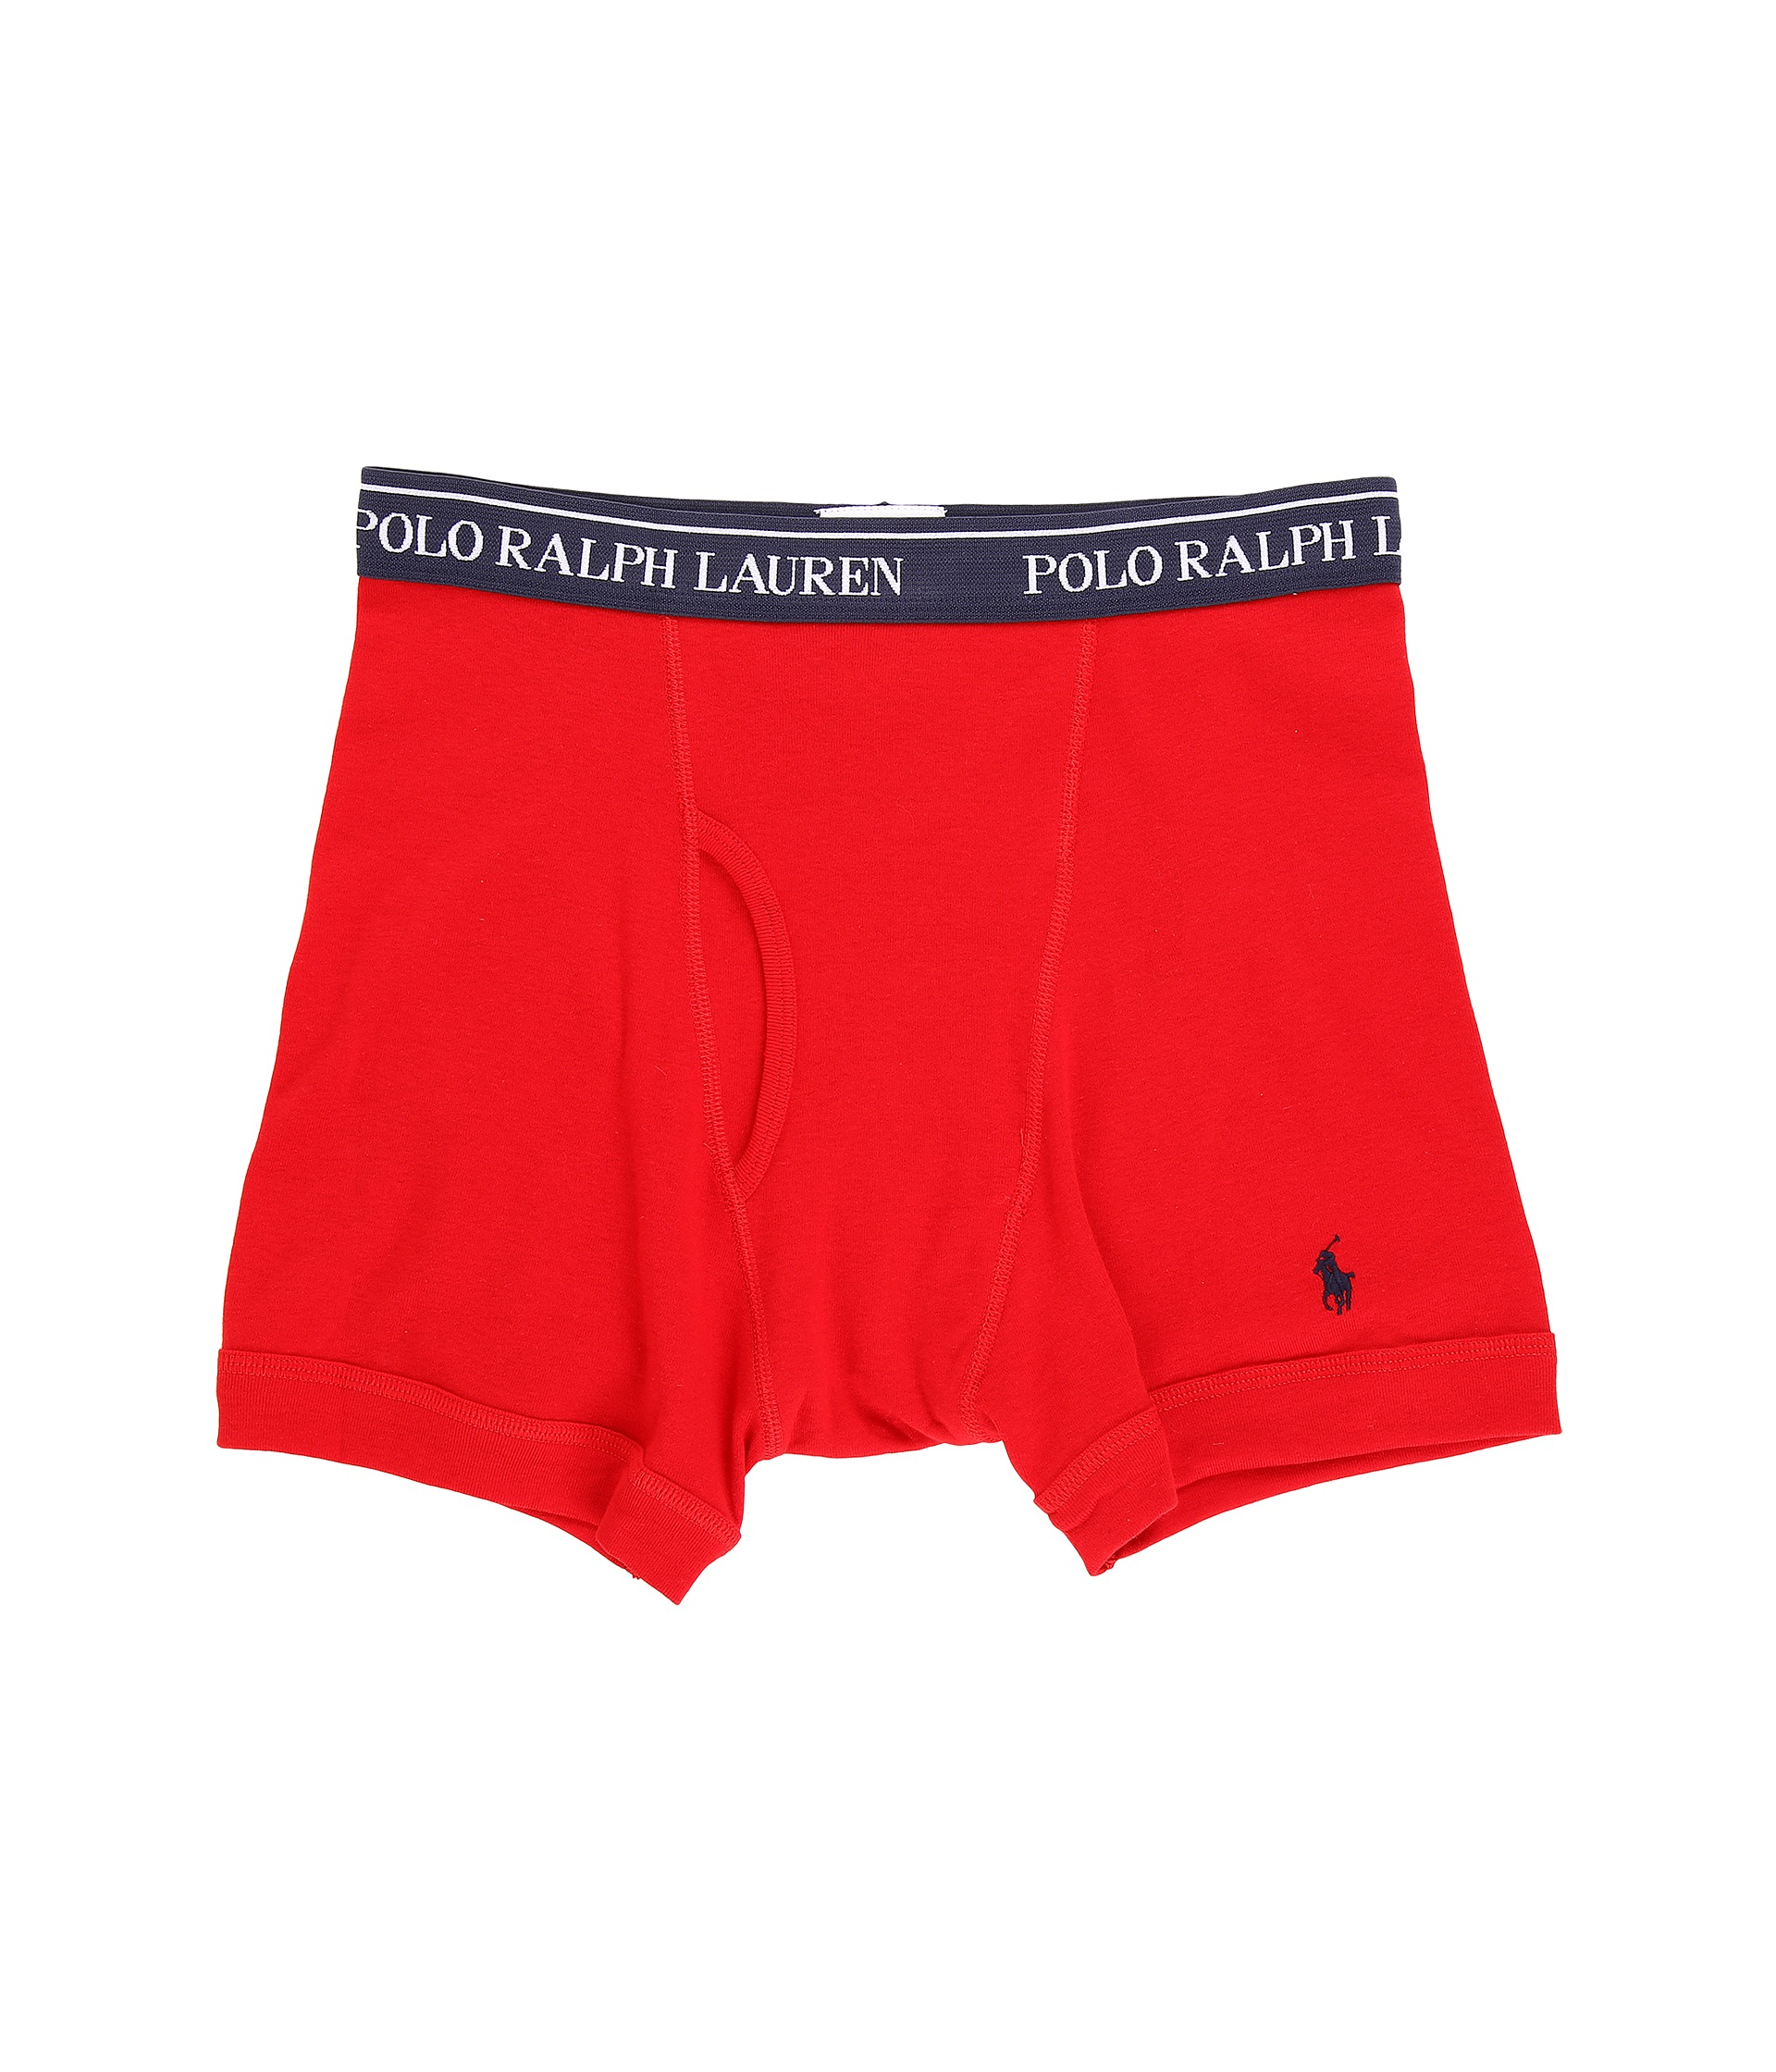 polo ralph lauren 3 pack boxer brief at. Black Bedroom Furniture Sets. Home Design Ideas